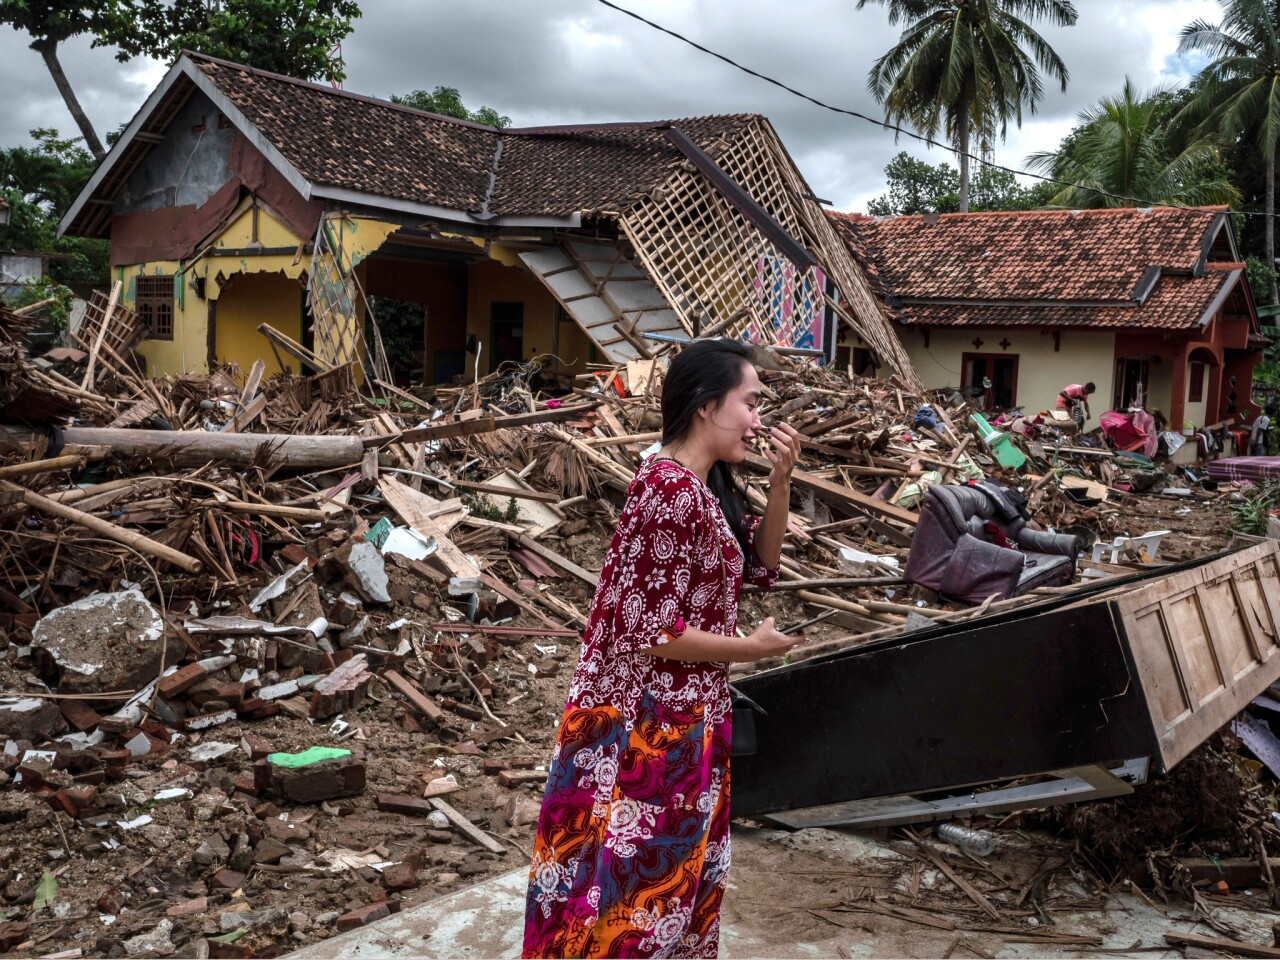 Death toll continues to rise following tsunami in Indonesia